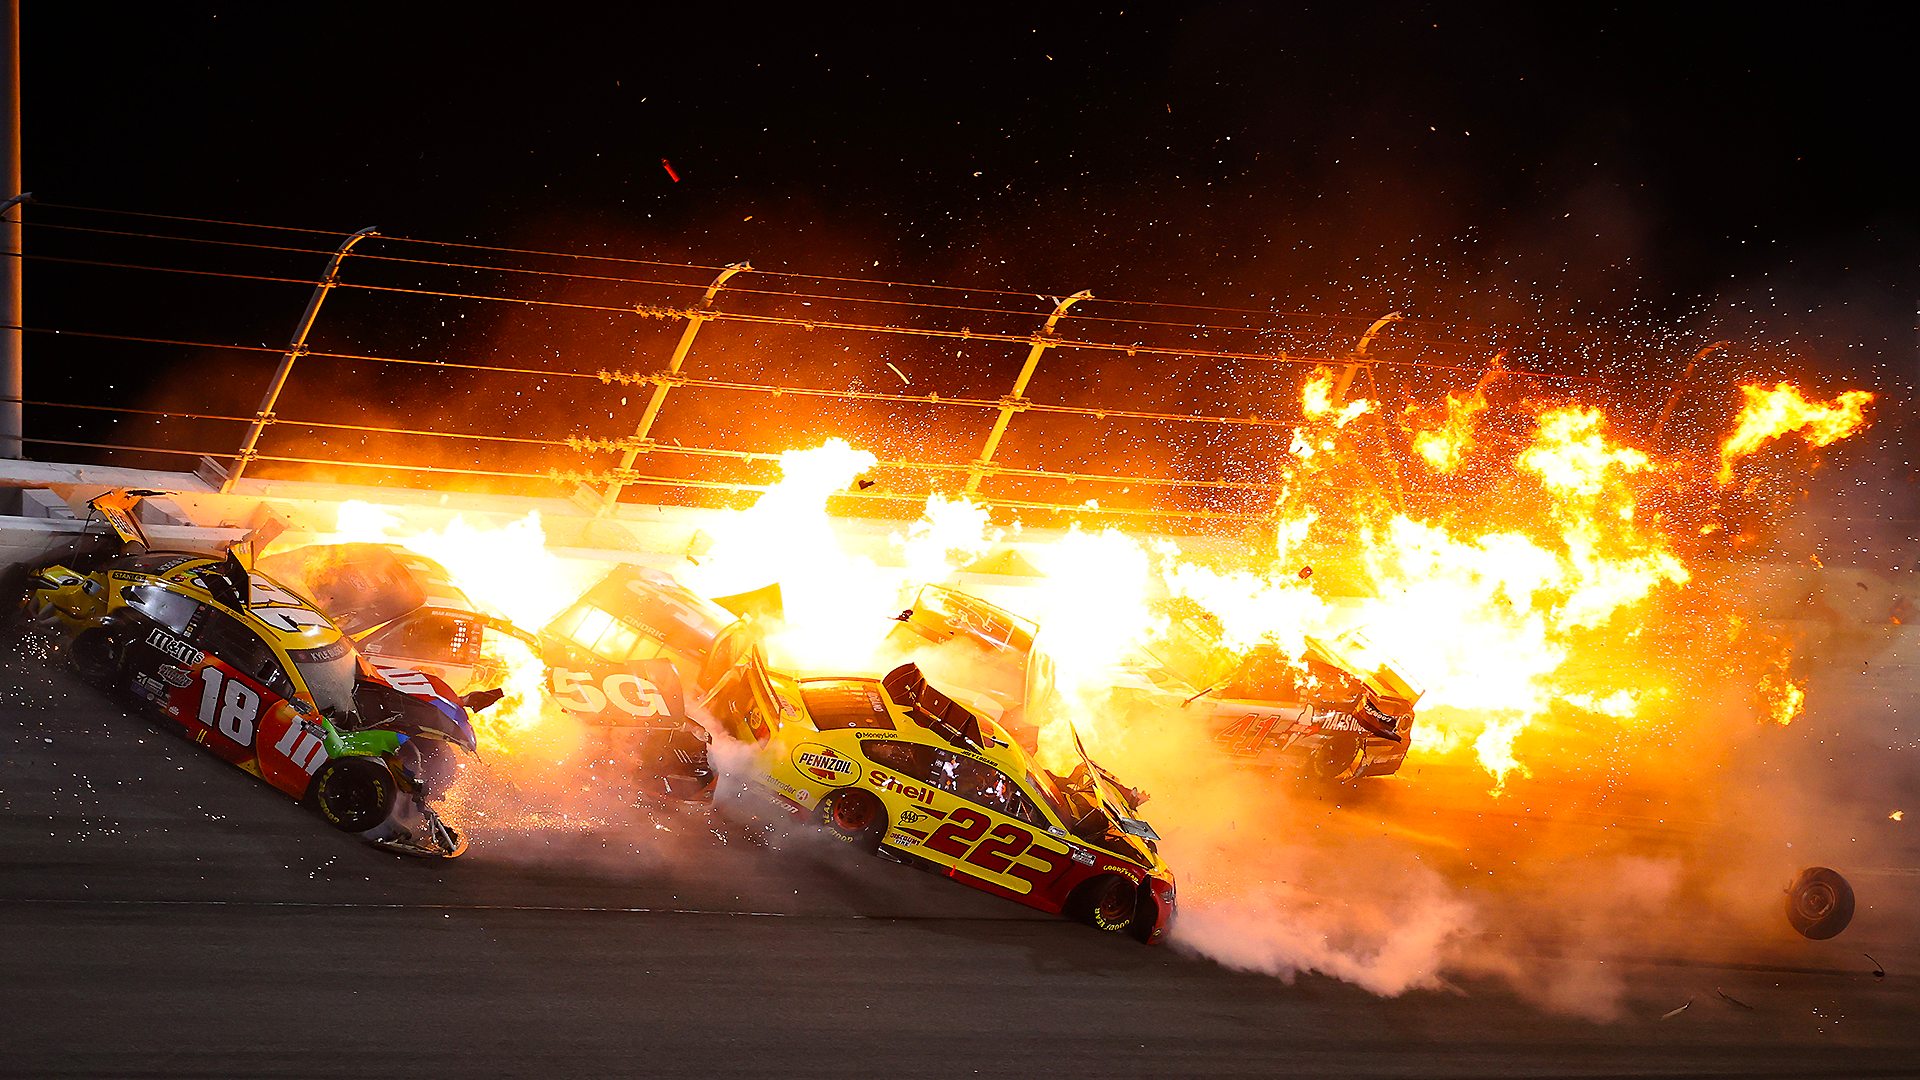 Watch the fiery Daytona 500 crash that caused a wild finish and Michael McDowell's win